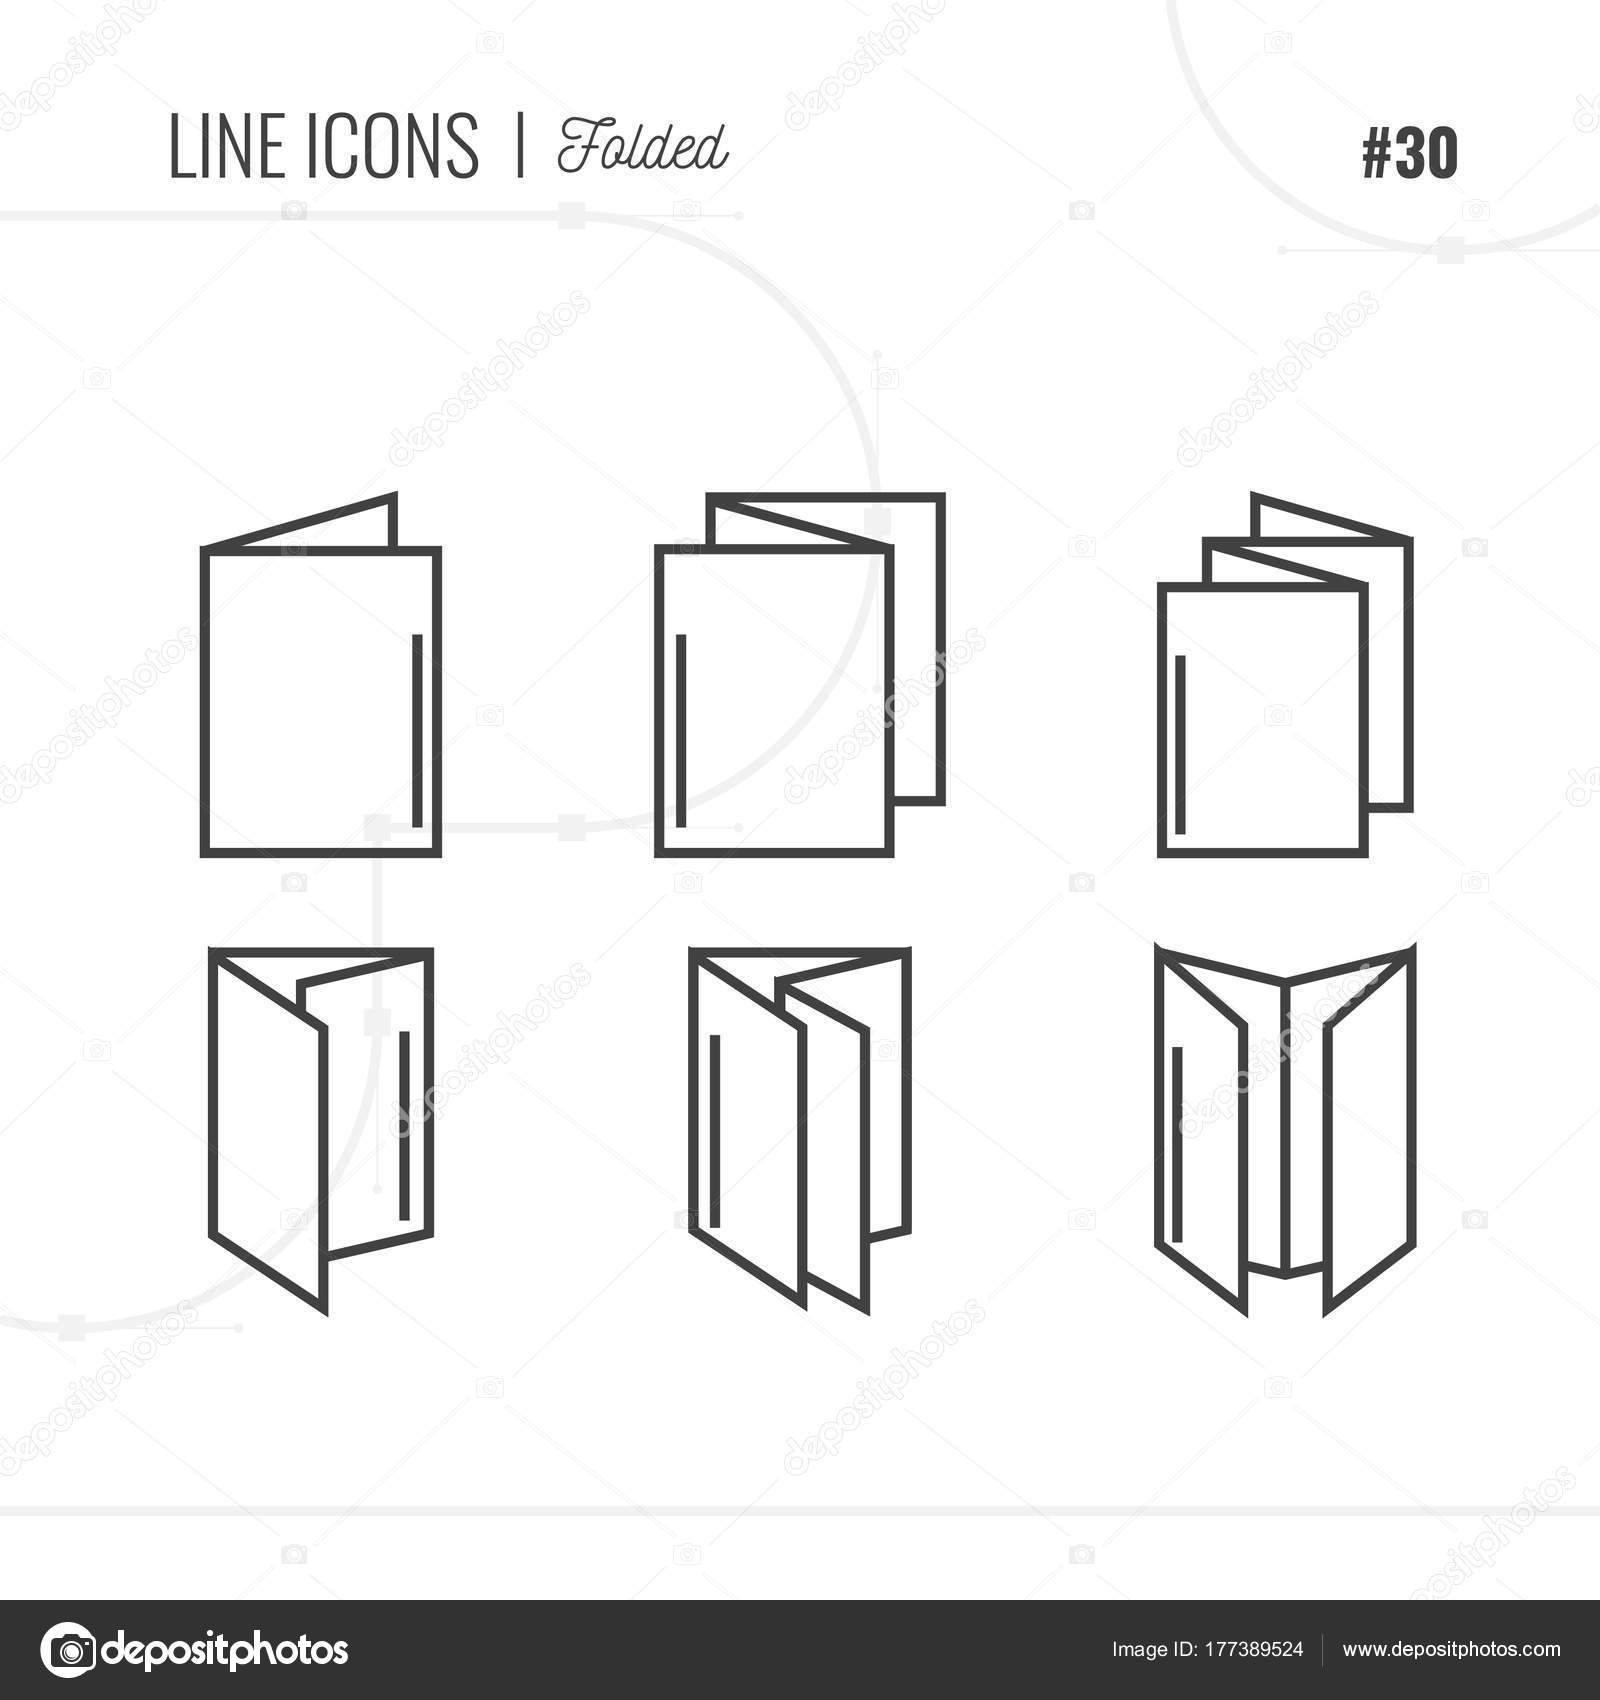 line icon of folded pamphlet flayer isolated object line ico